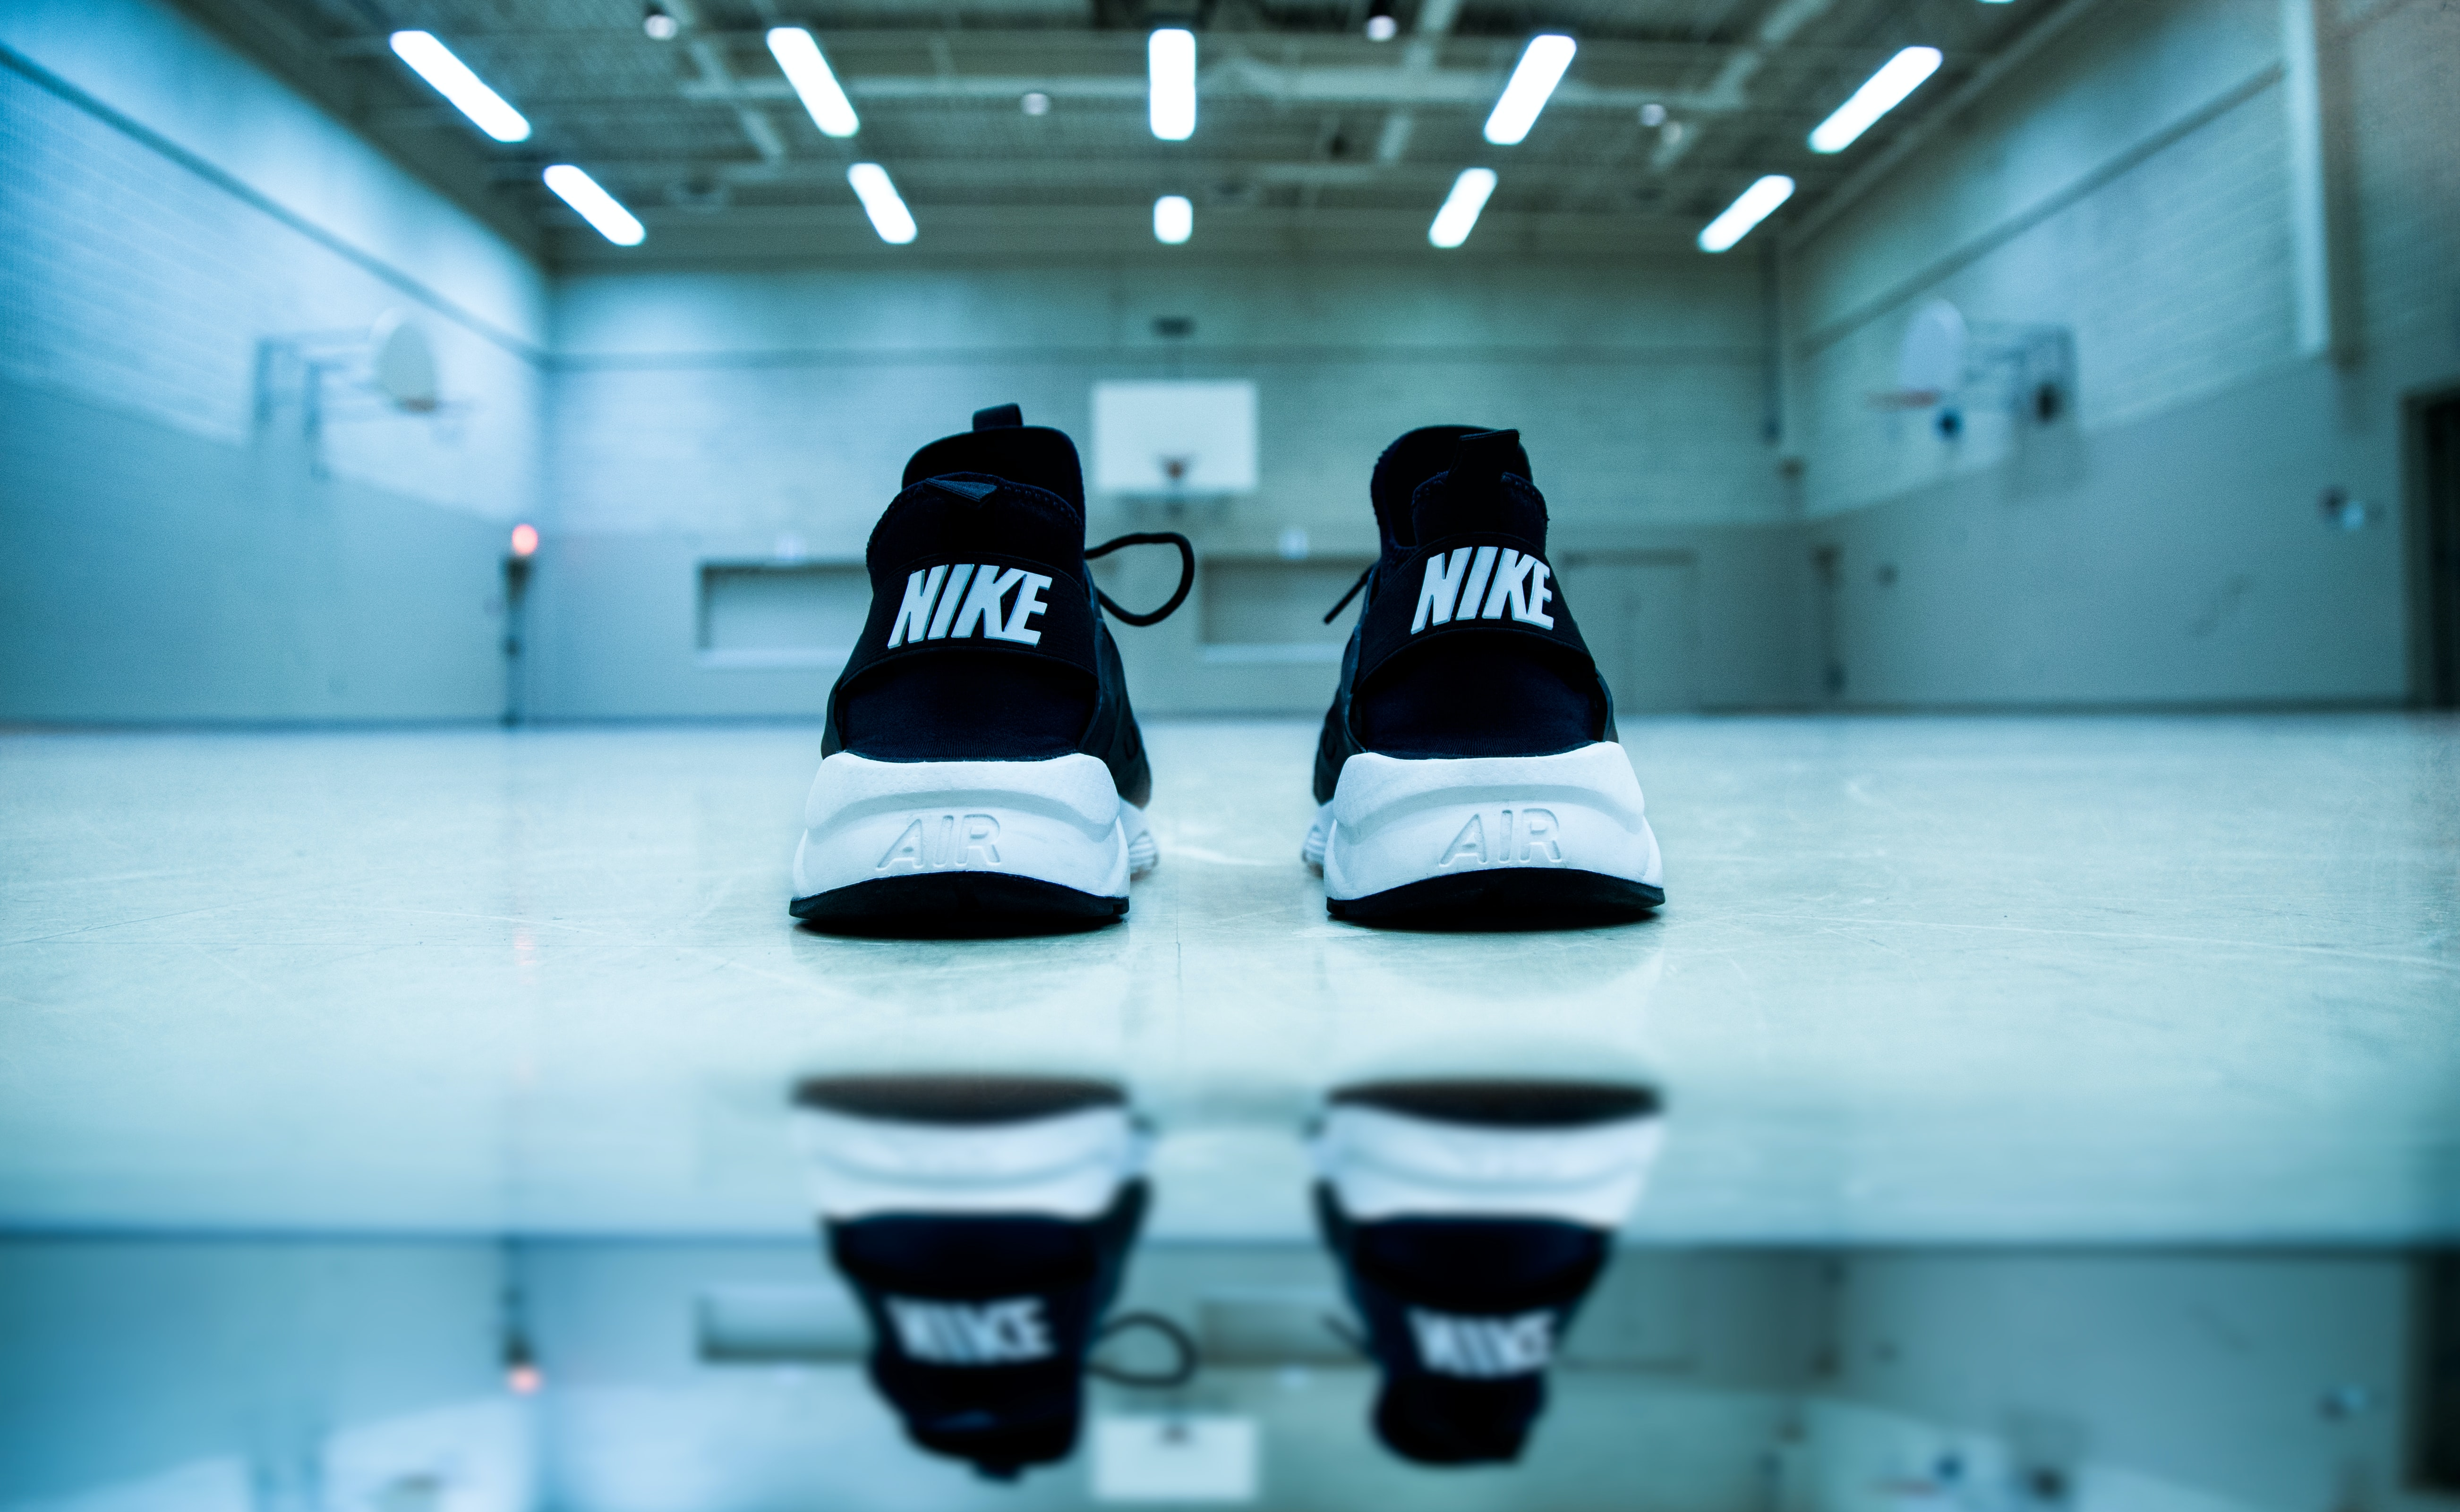 Black Nike sneakers are reflected in a reflective surface underneath fluorescent lights